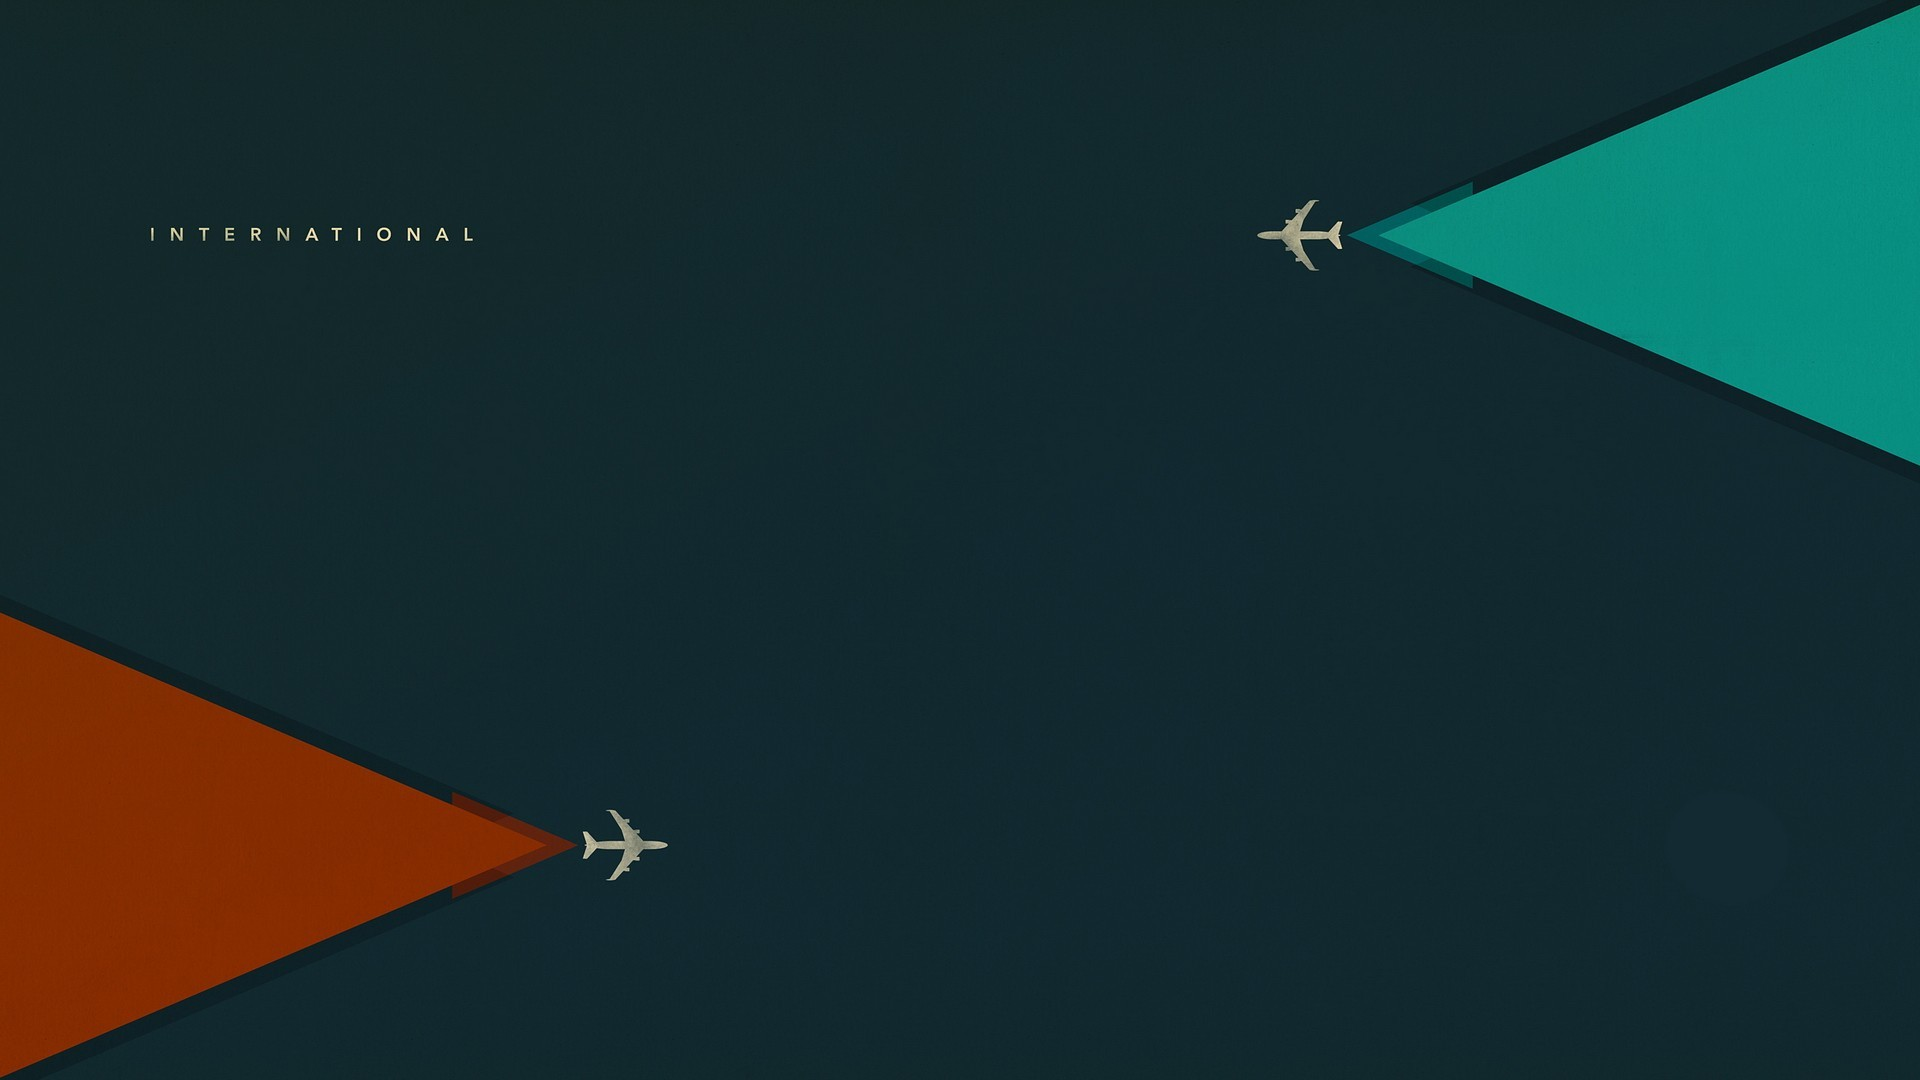 airplane minimalism, hd planes, 4k wallpapers, images, backgrounds